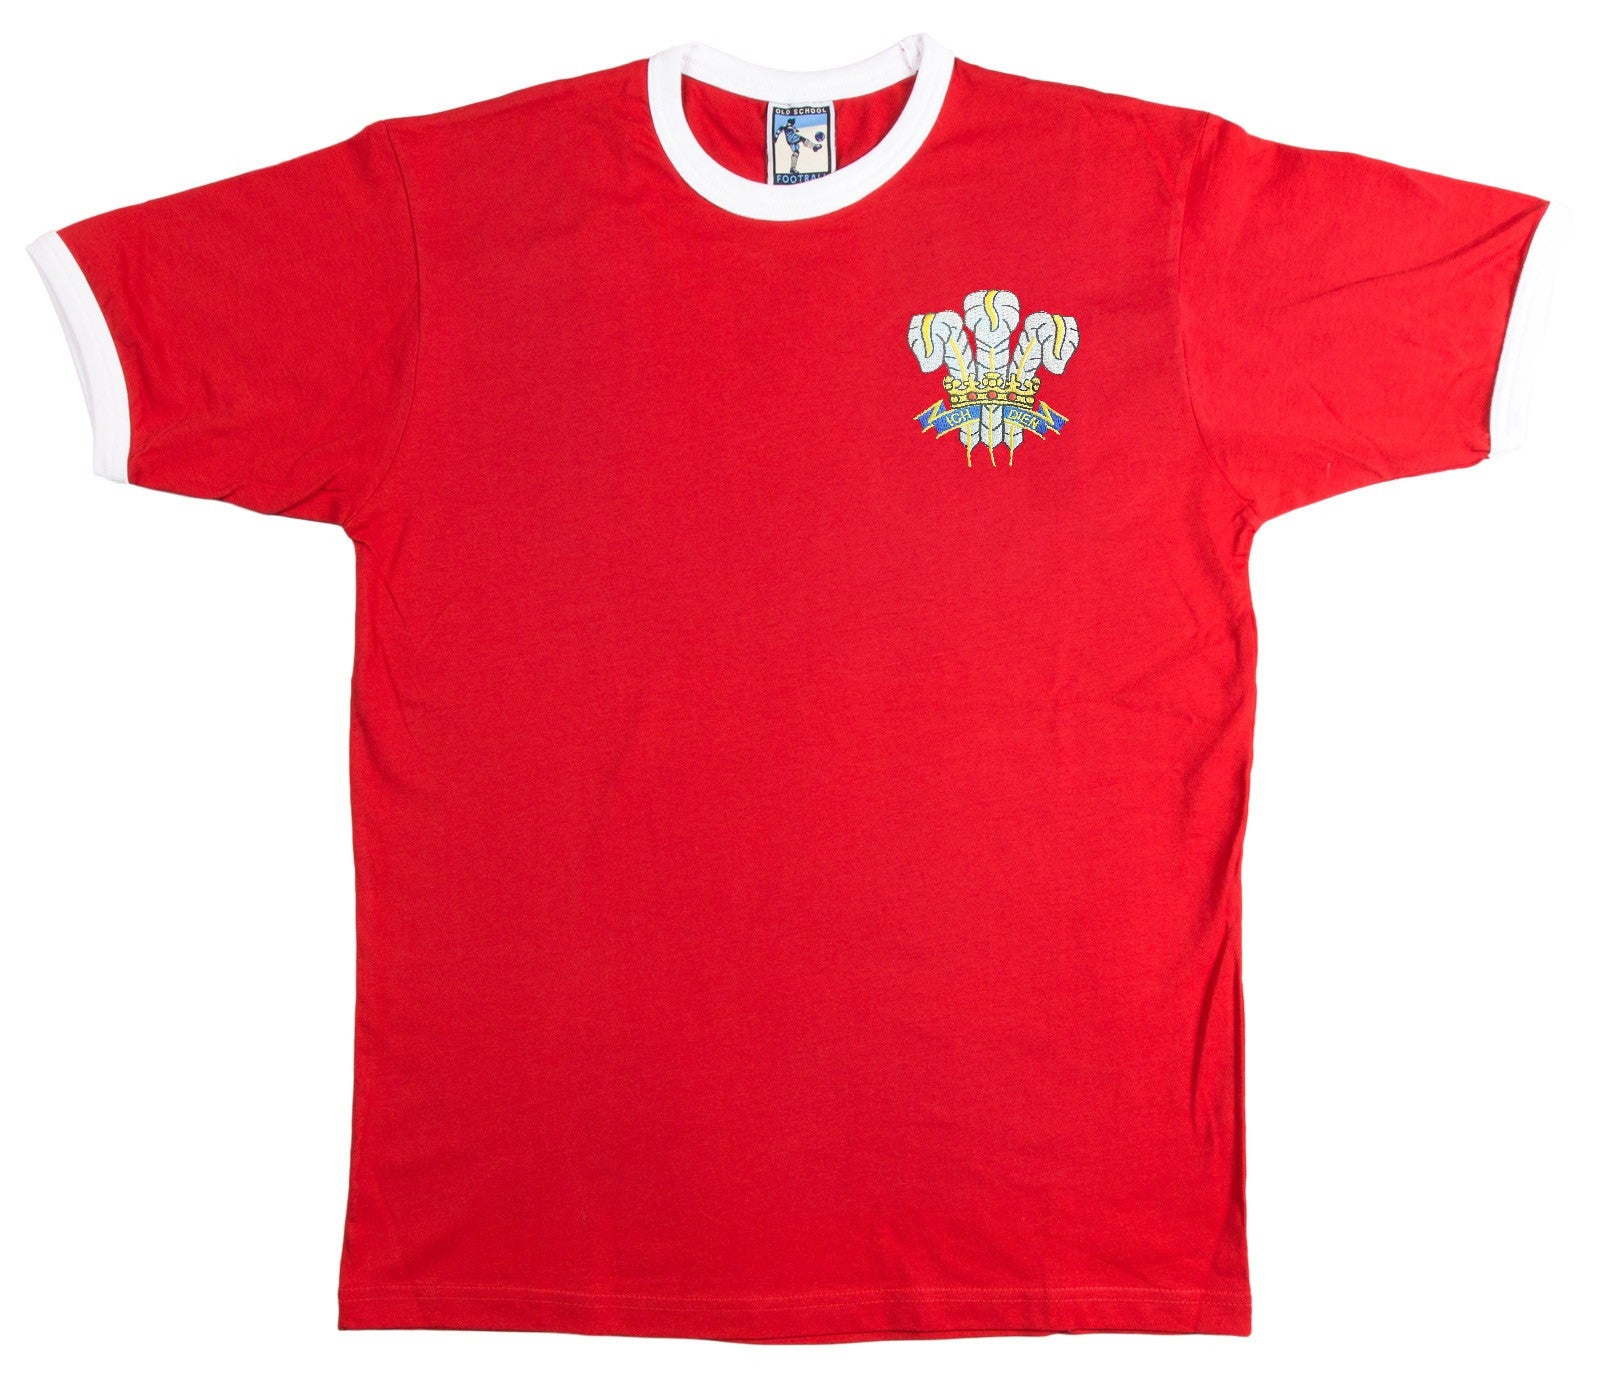 Wales Rugby Retro T Shirt 1970s - T-shirt